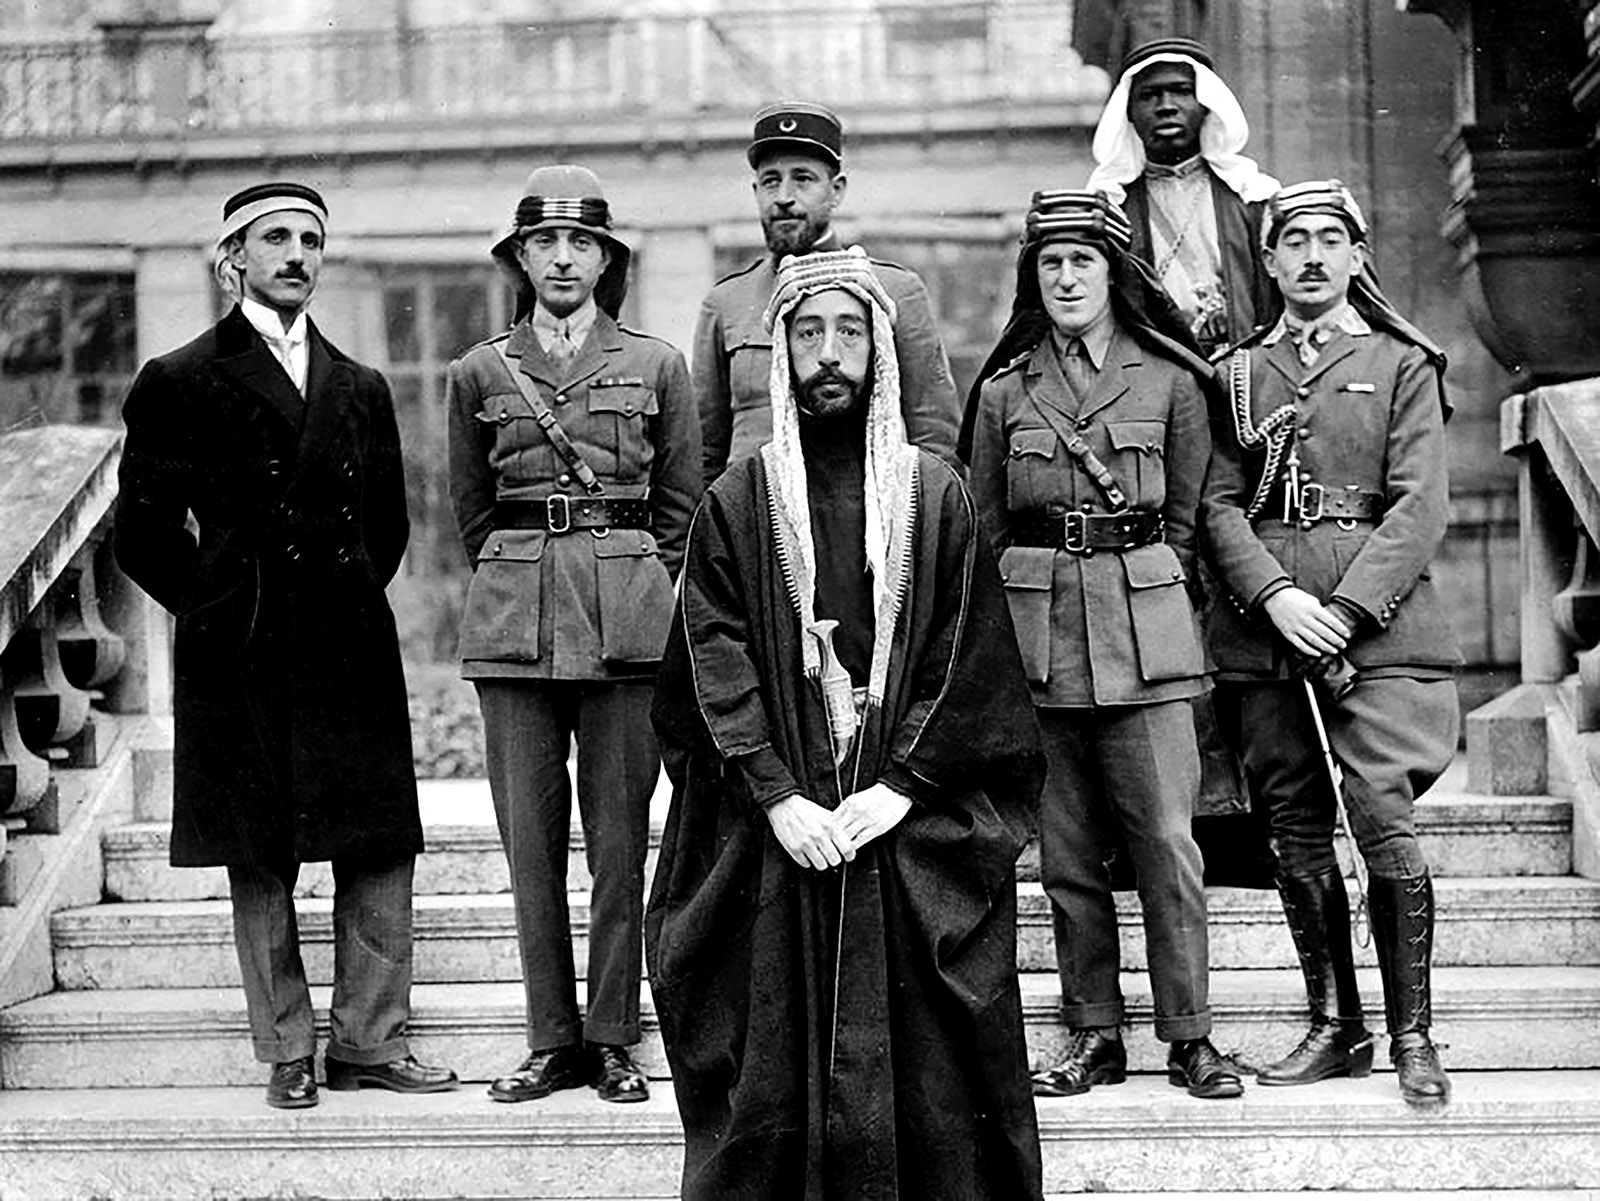 Prince Faisal and his delegation, including T.E. Lawrence, at the Paris Peace Conference, 1919